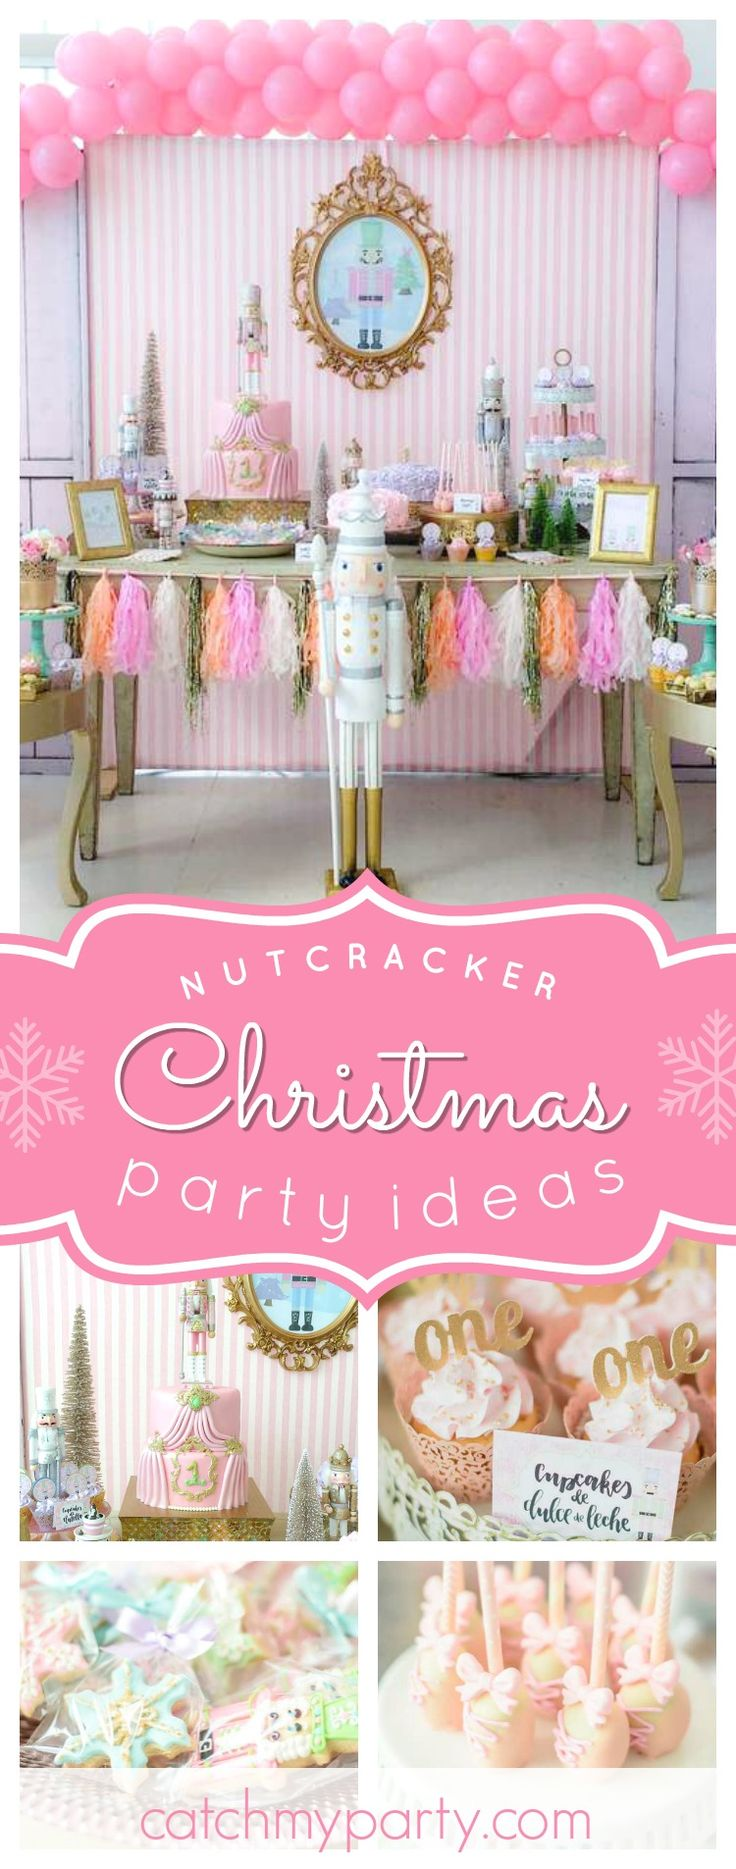 Don't miss this amazing Christmas Nutcracker themed 1st birthday party!! The birthday cake is gorgeous!! See more party ideas and share yours at CatchMyParty.com  #christmas #nutcracker #ballet #1stbirthday